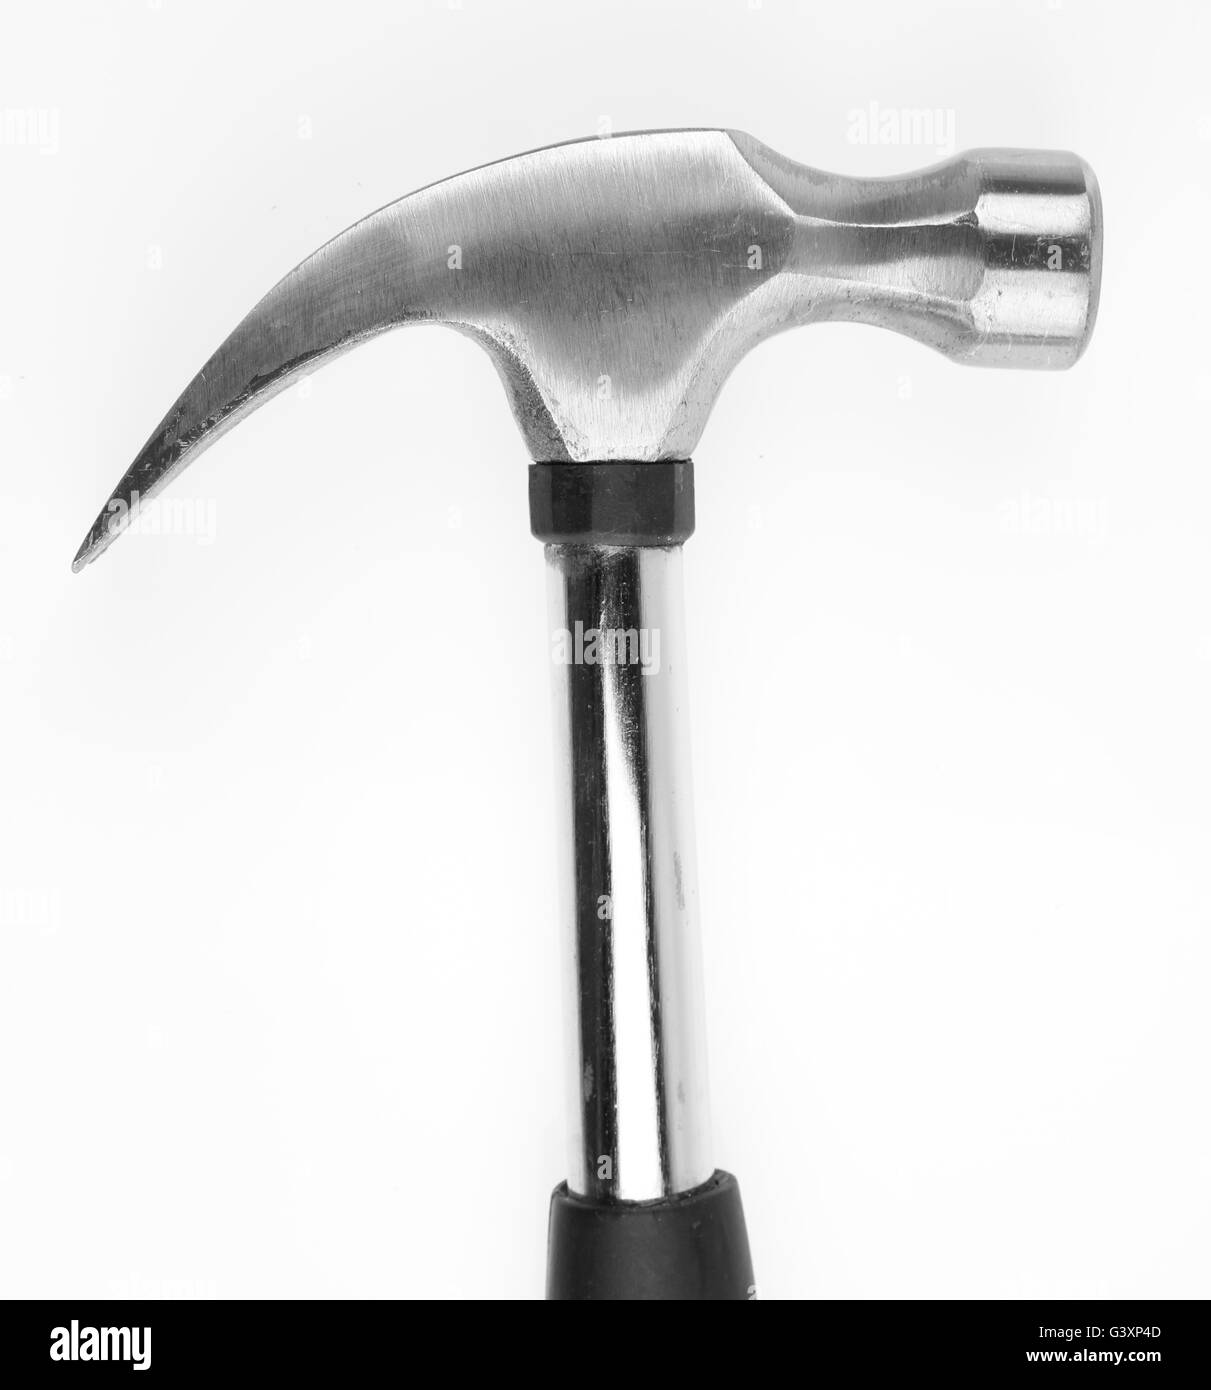 Claw hammer on plain background - Stock Image